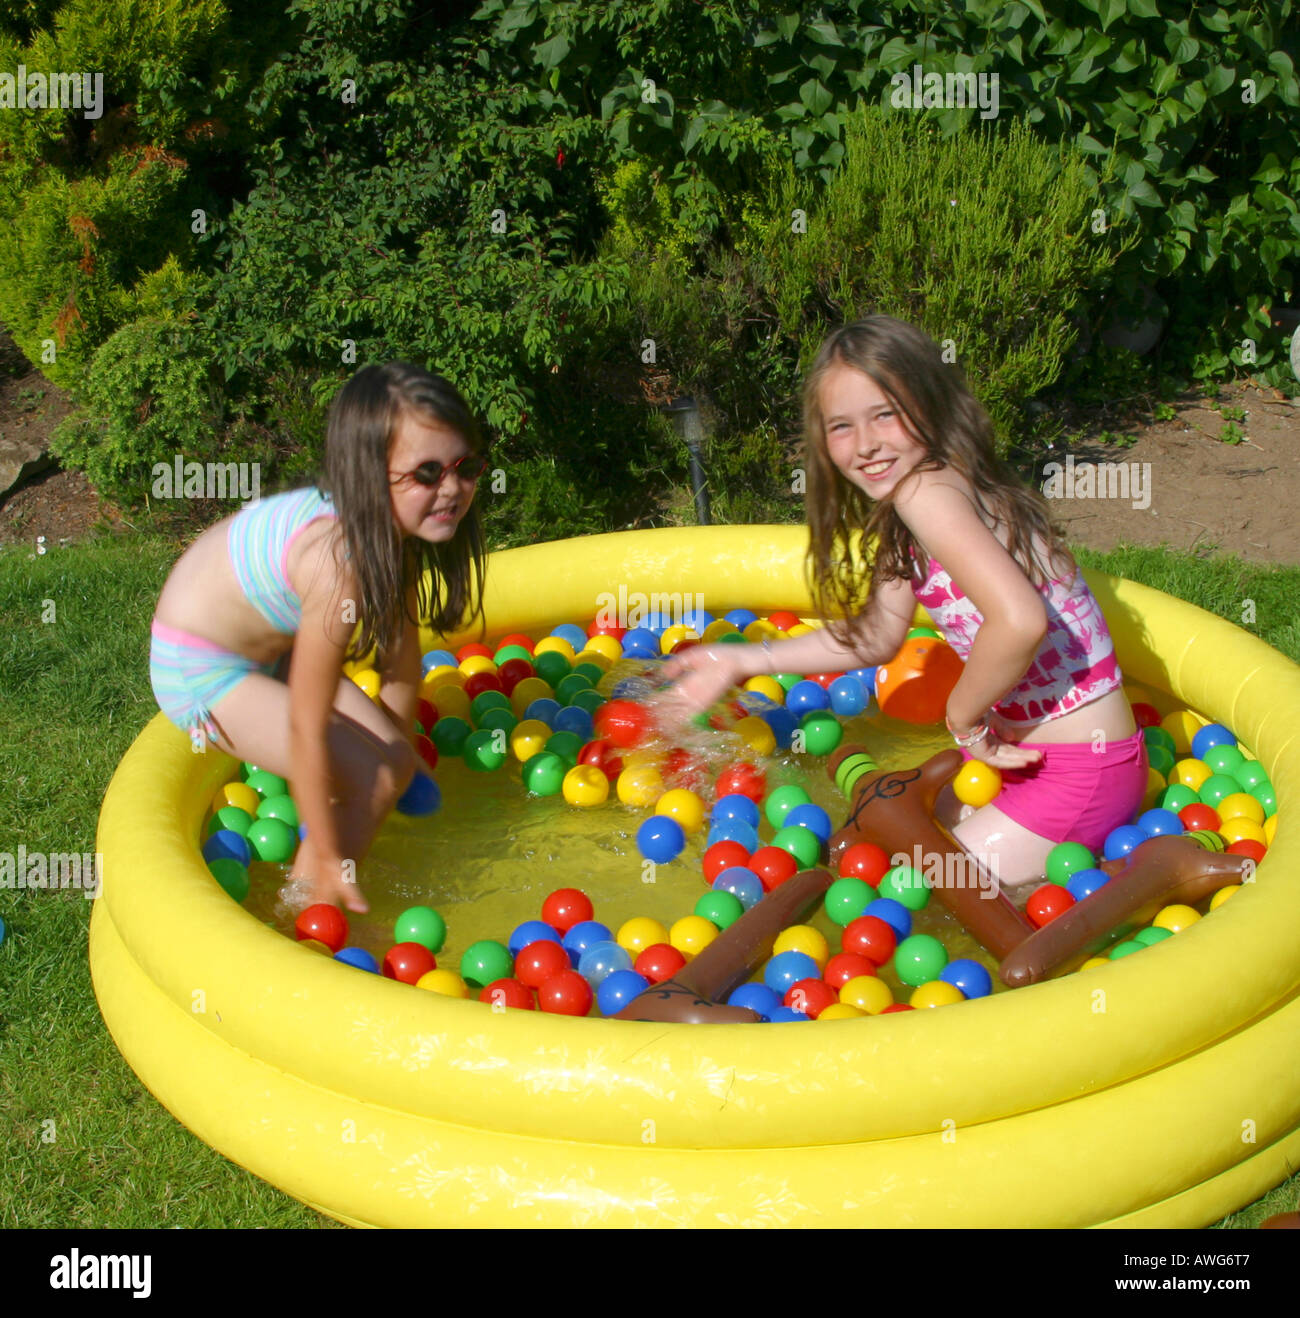 Two young girls playing in paddling pool in garden stock for Garden paddling pools